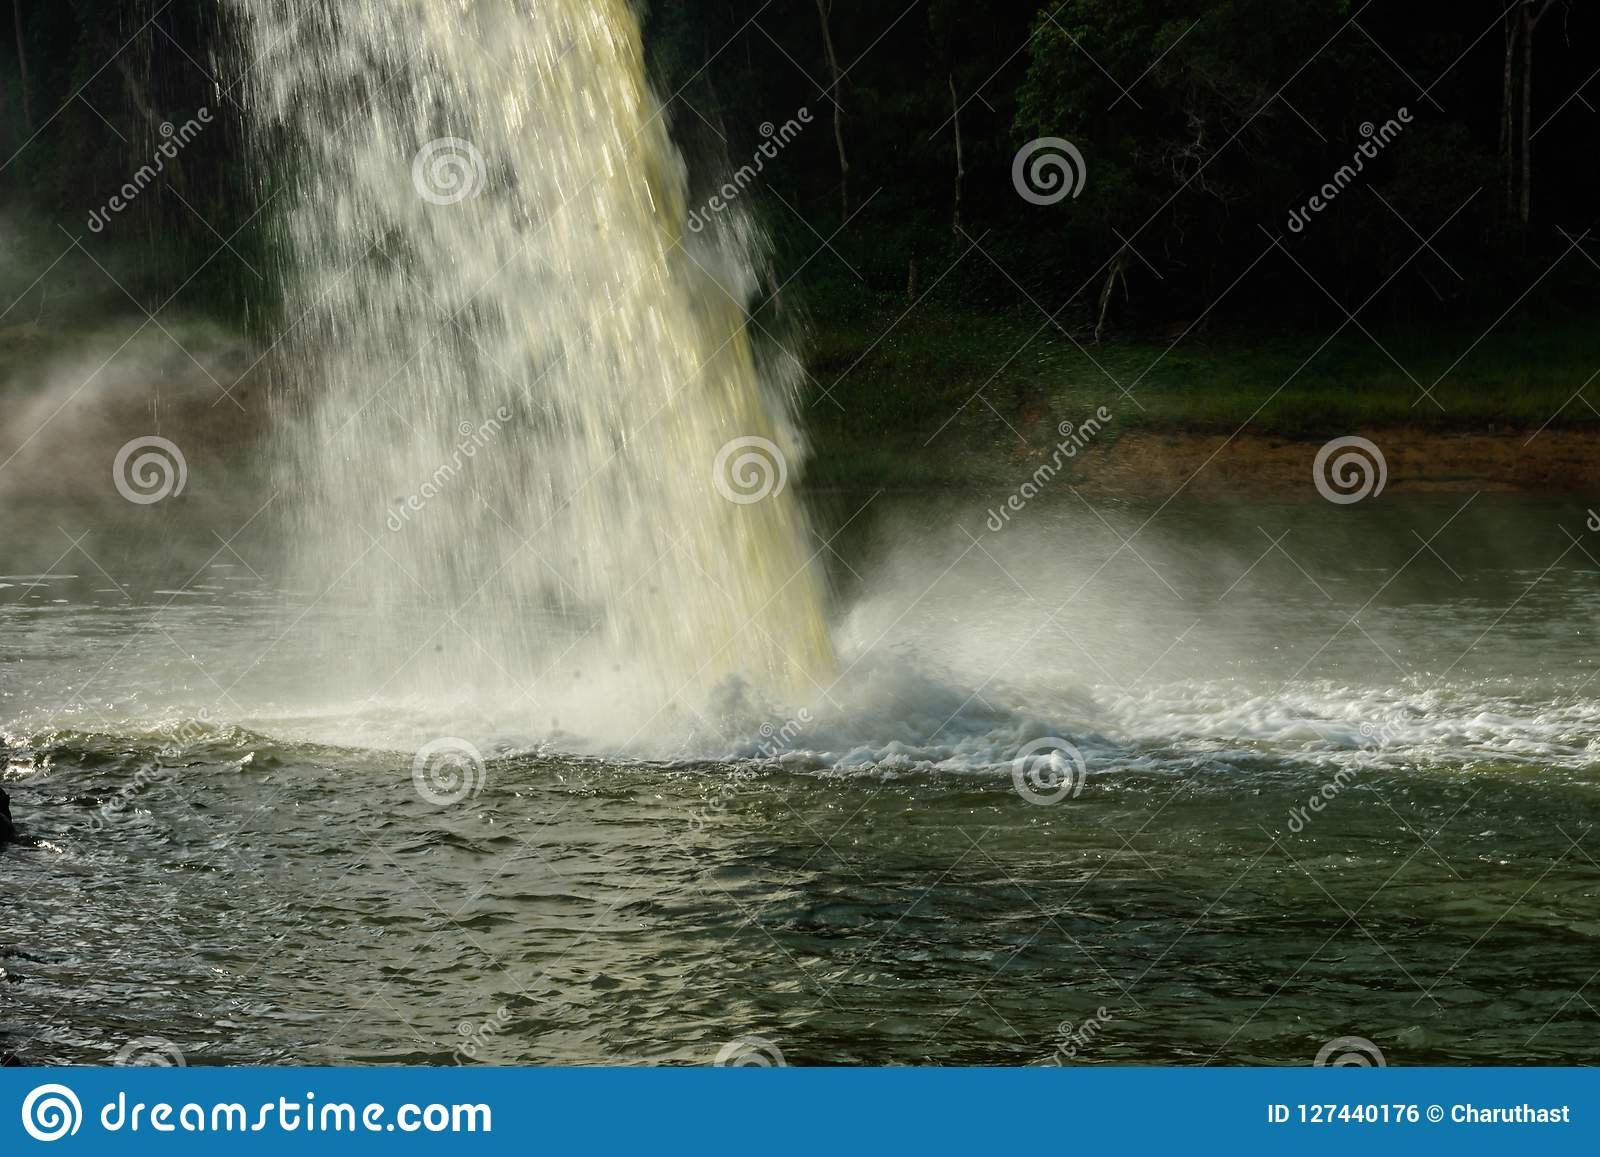 Water from the drain In the production of water